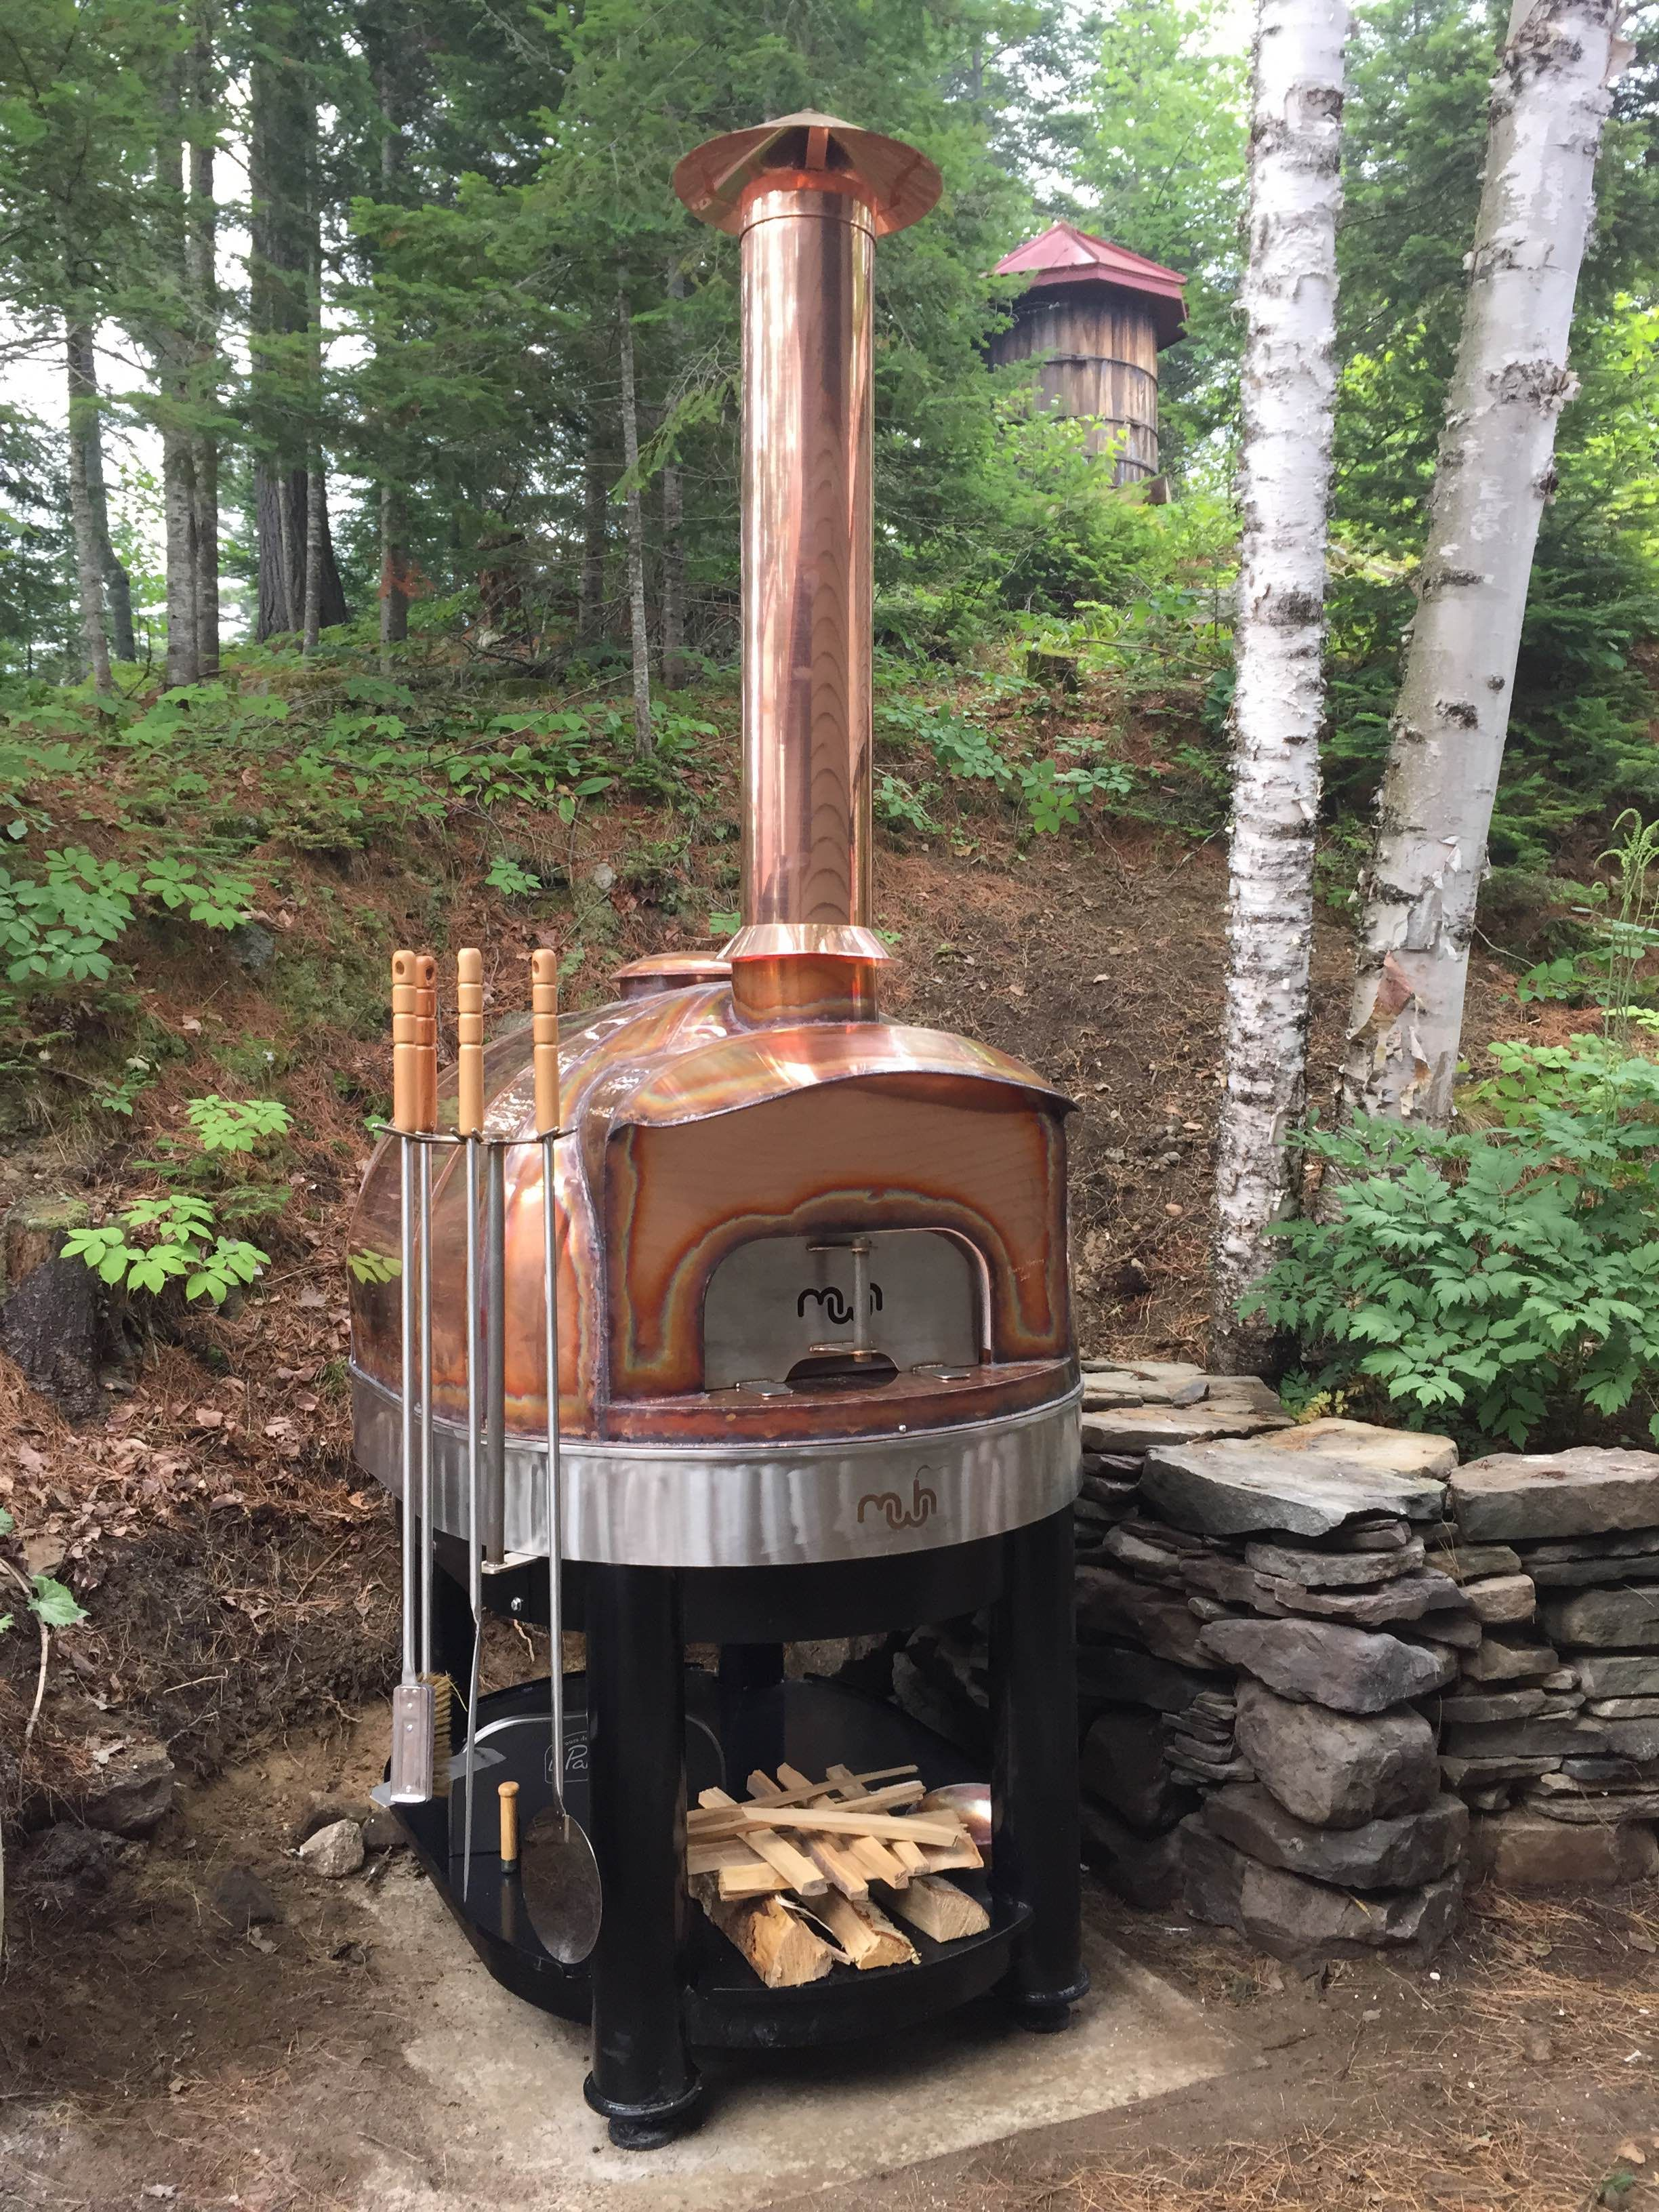 Residential Wood Fired Oven Copper Turnkey Model 99 Pizza Oven Bread Baking Maine Wood Heat Company Mwh Pizza Oven Outdoor Pizza Oven Outdoor Oven